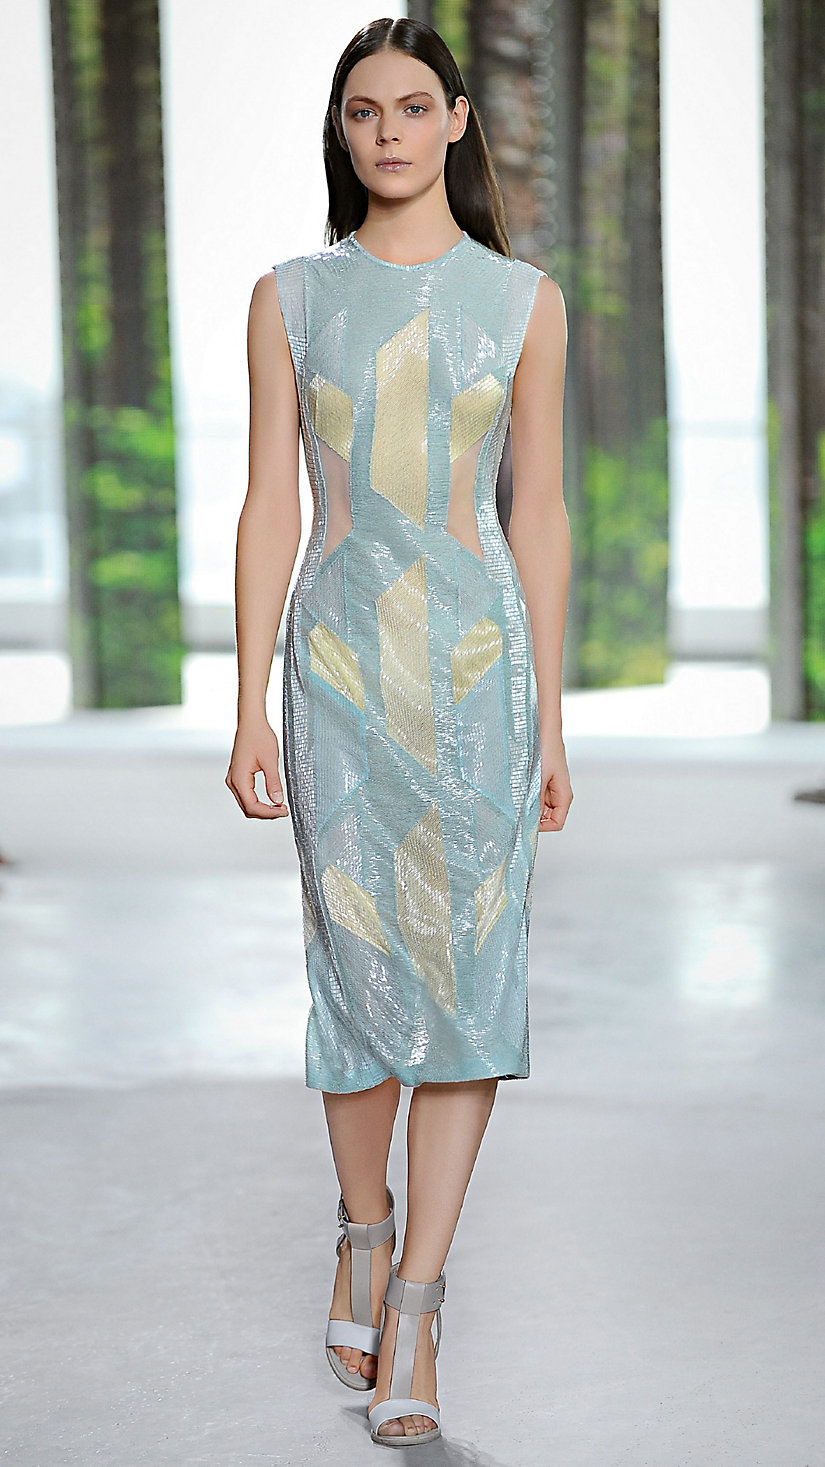 A Bauhaus-inspired look on the Spring/Summer 2015 runway at New York Fashion Week